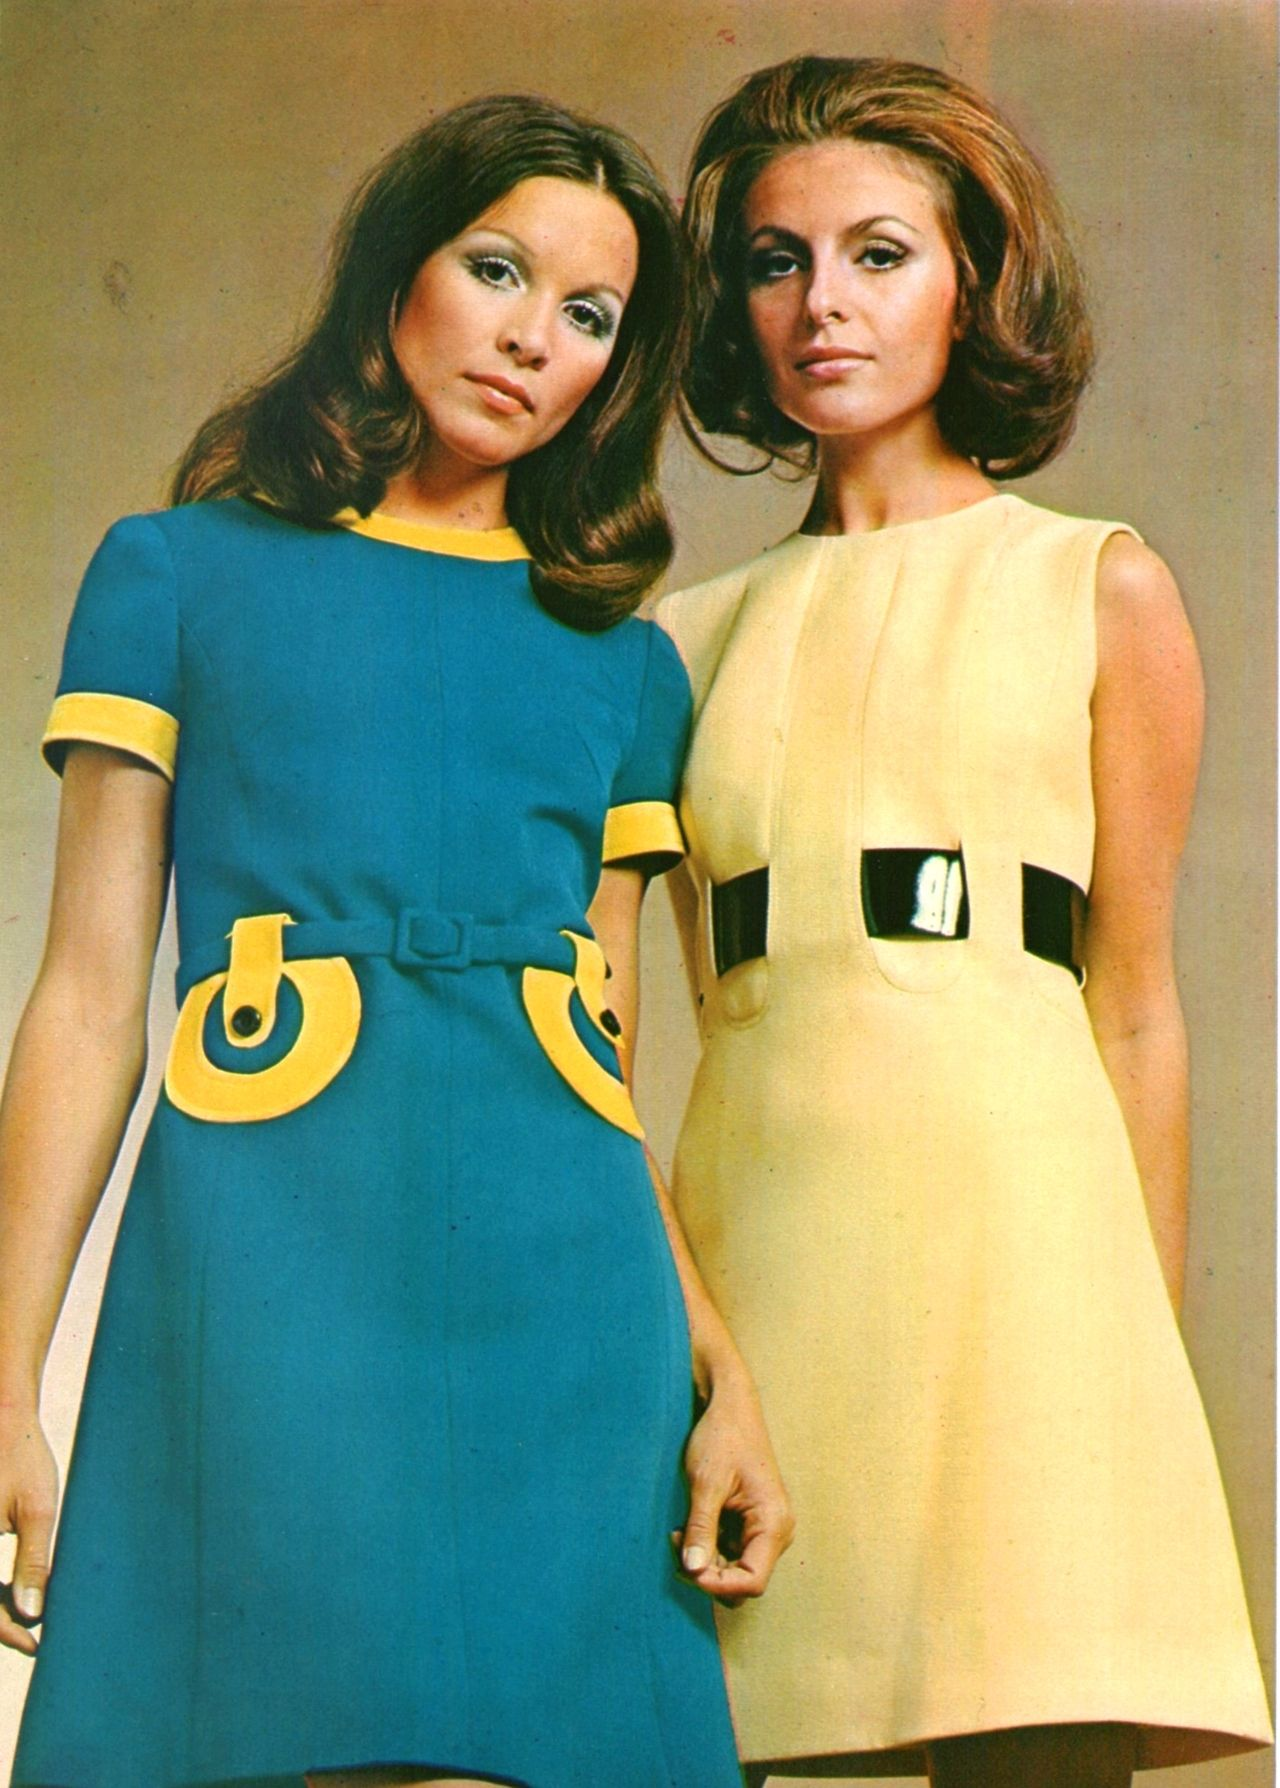 60s Mod Fashion. Could Be Pierre Cardin????